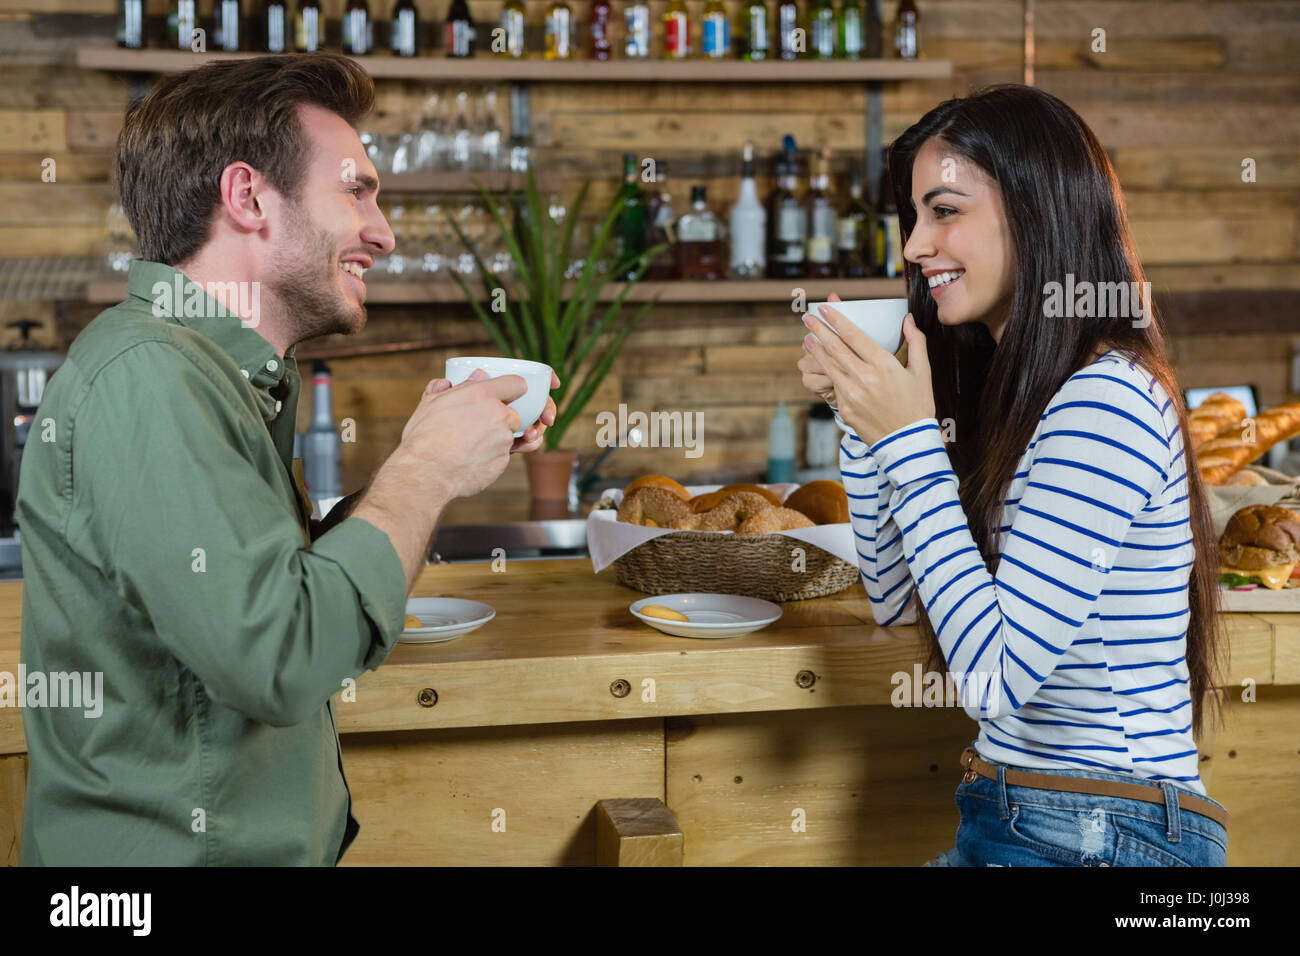 Couple interacting each other while having coffee at counter in café Stock Photo